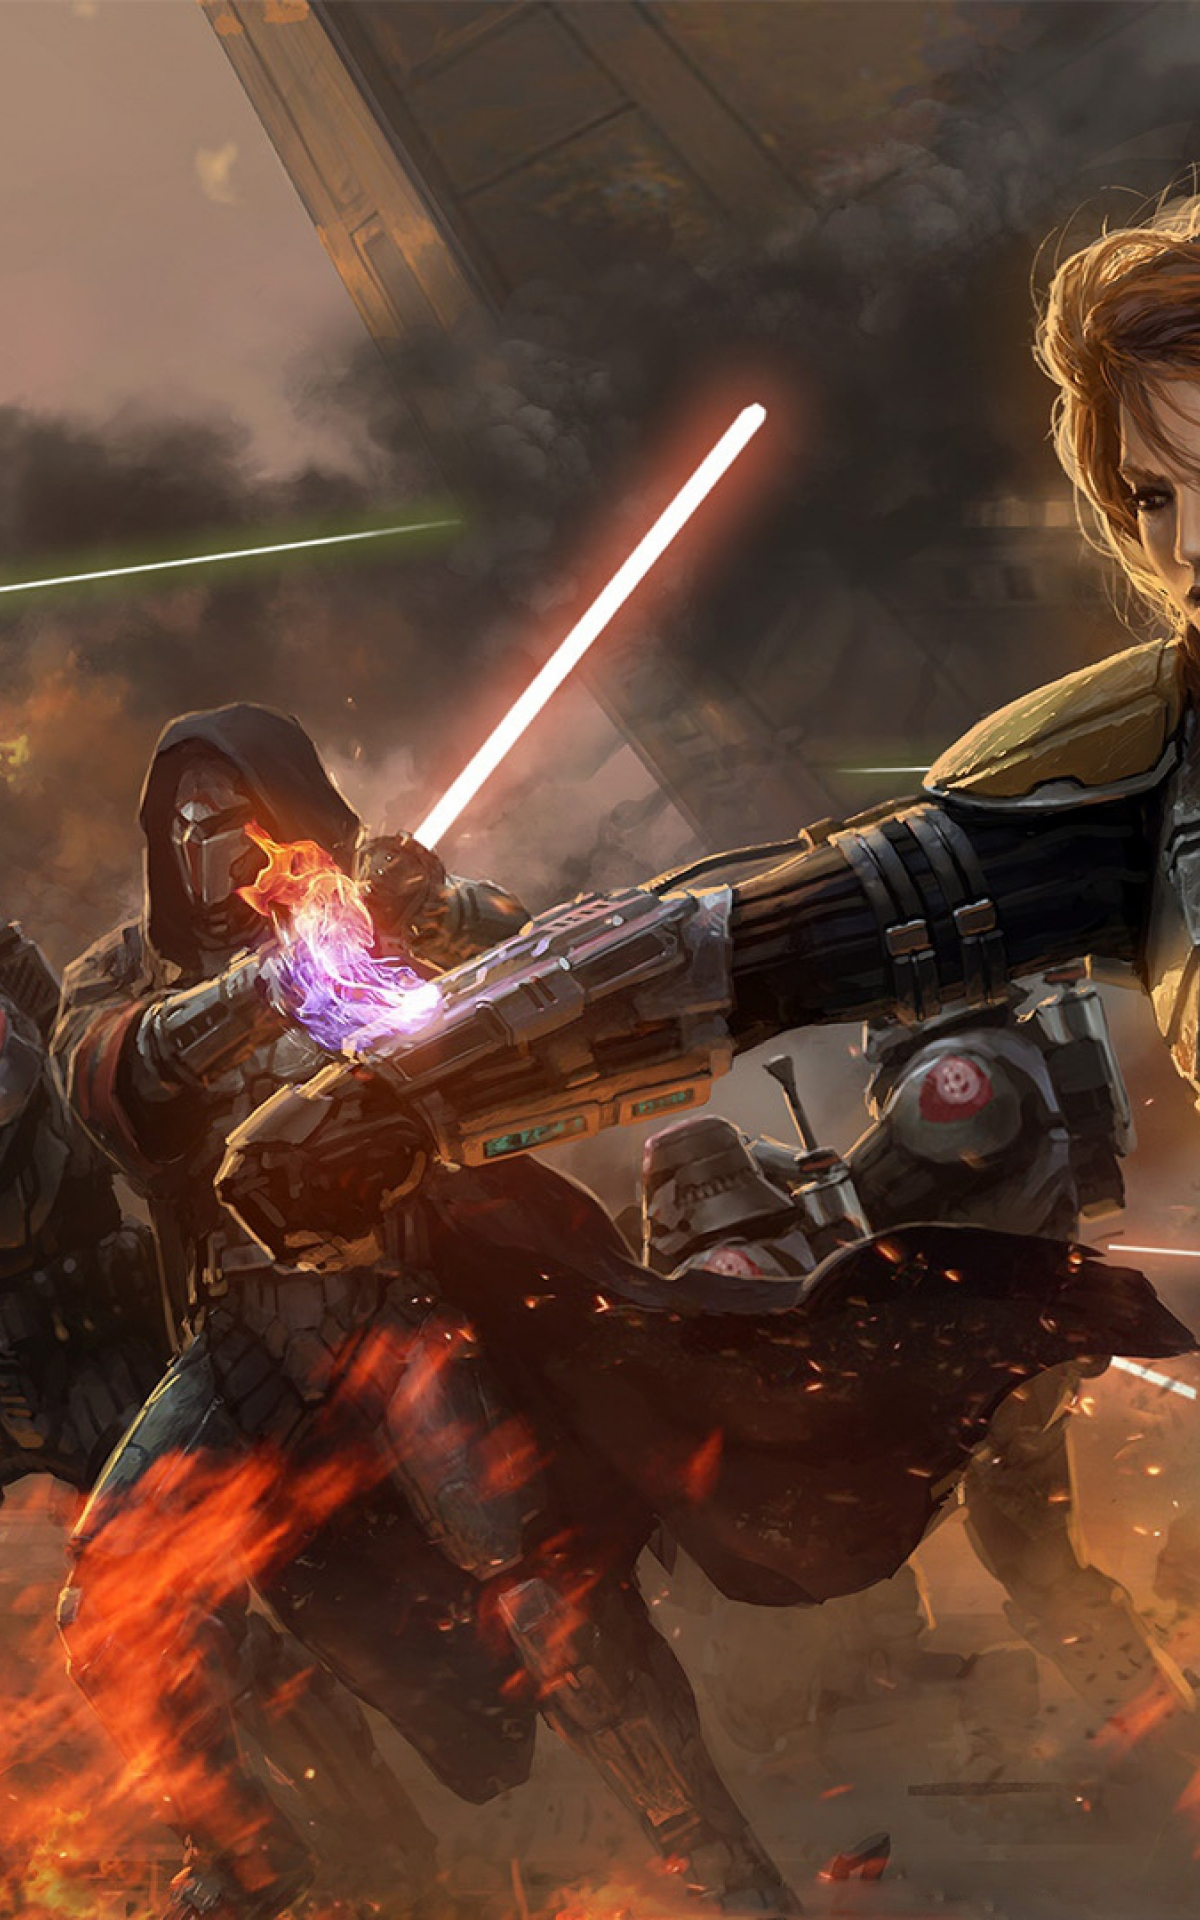 Free Download Star Wars The Old Republic Girl Lightsabers Battle Smoke 3840x2160 For Your Desktop Mobile Tablet Explore 45 4k Wallpaper Star Wars Star Wars Desktop Wallpaper Star Wars